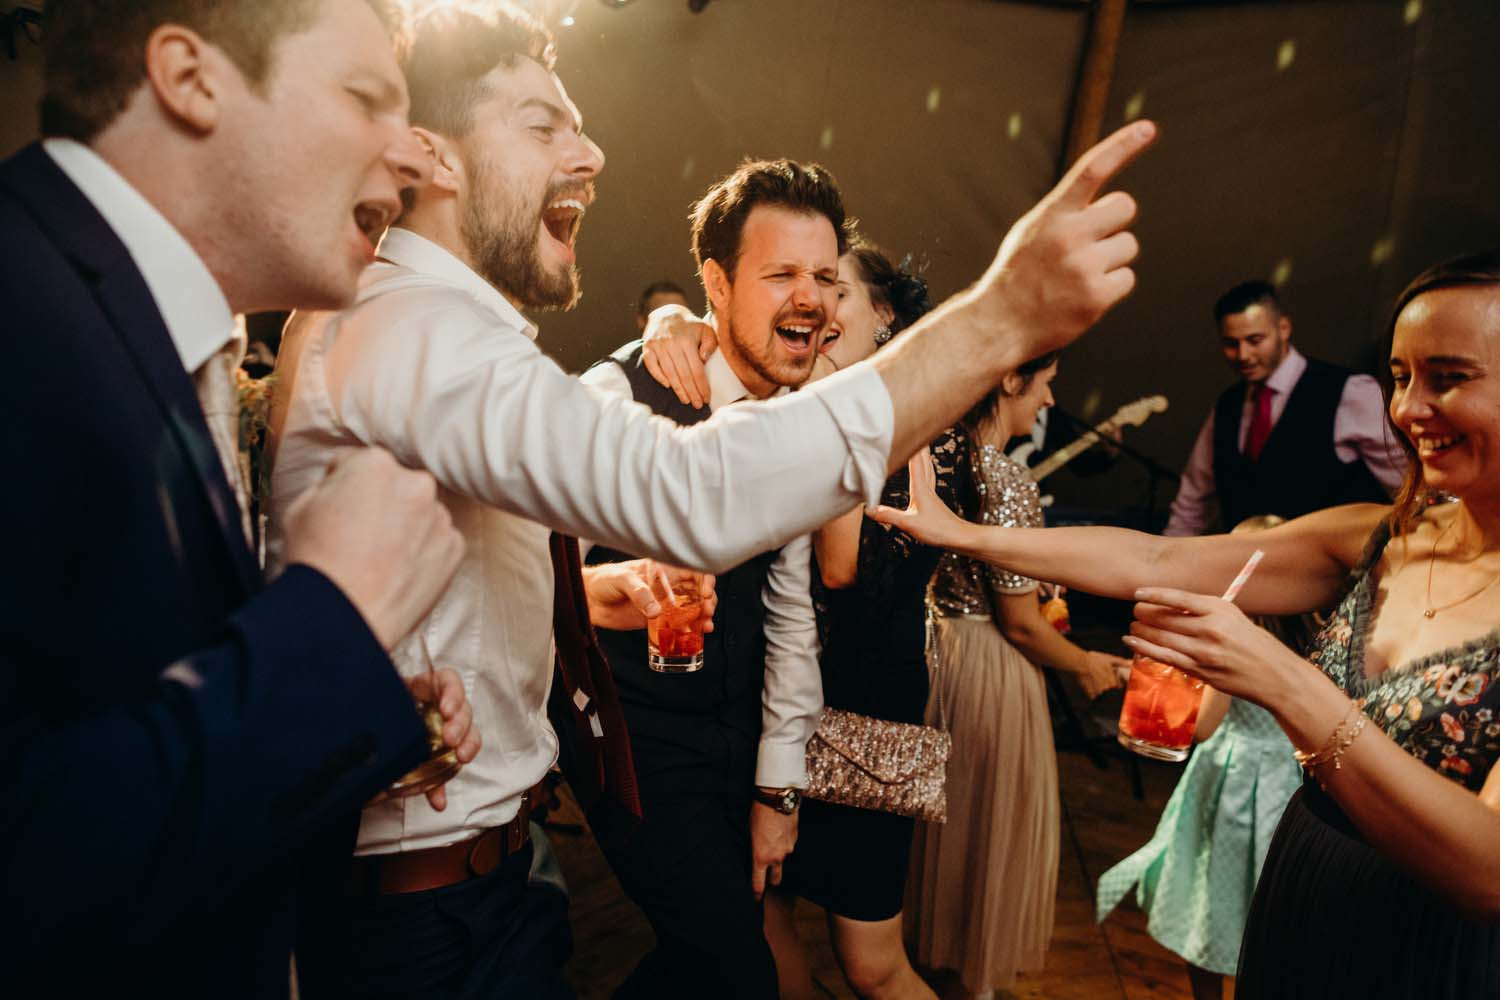 wedding dancefloor antics